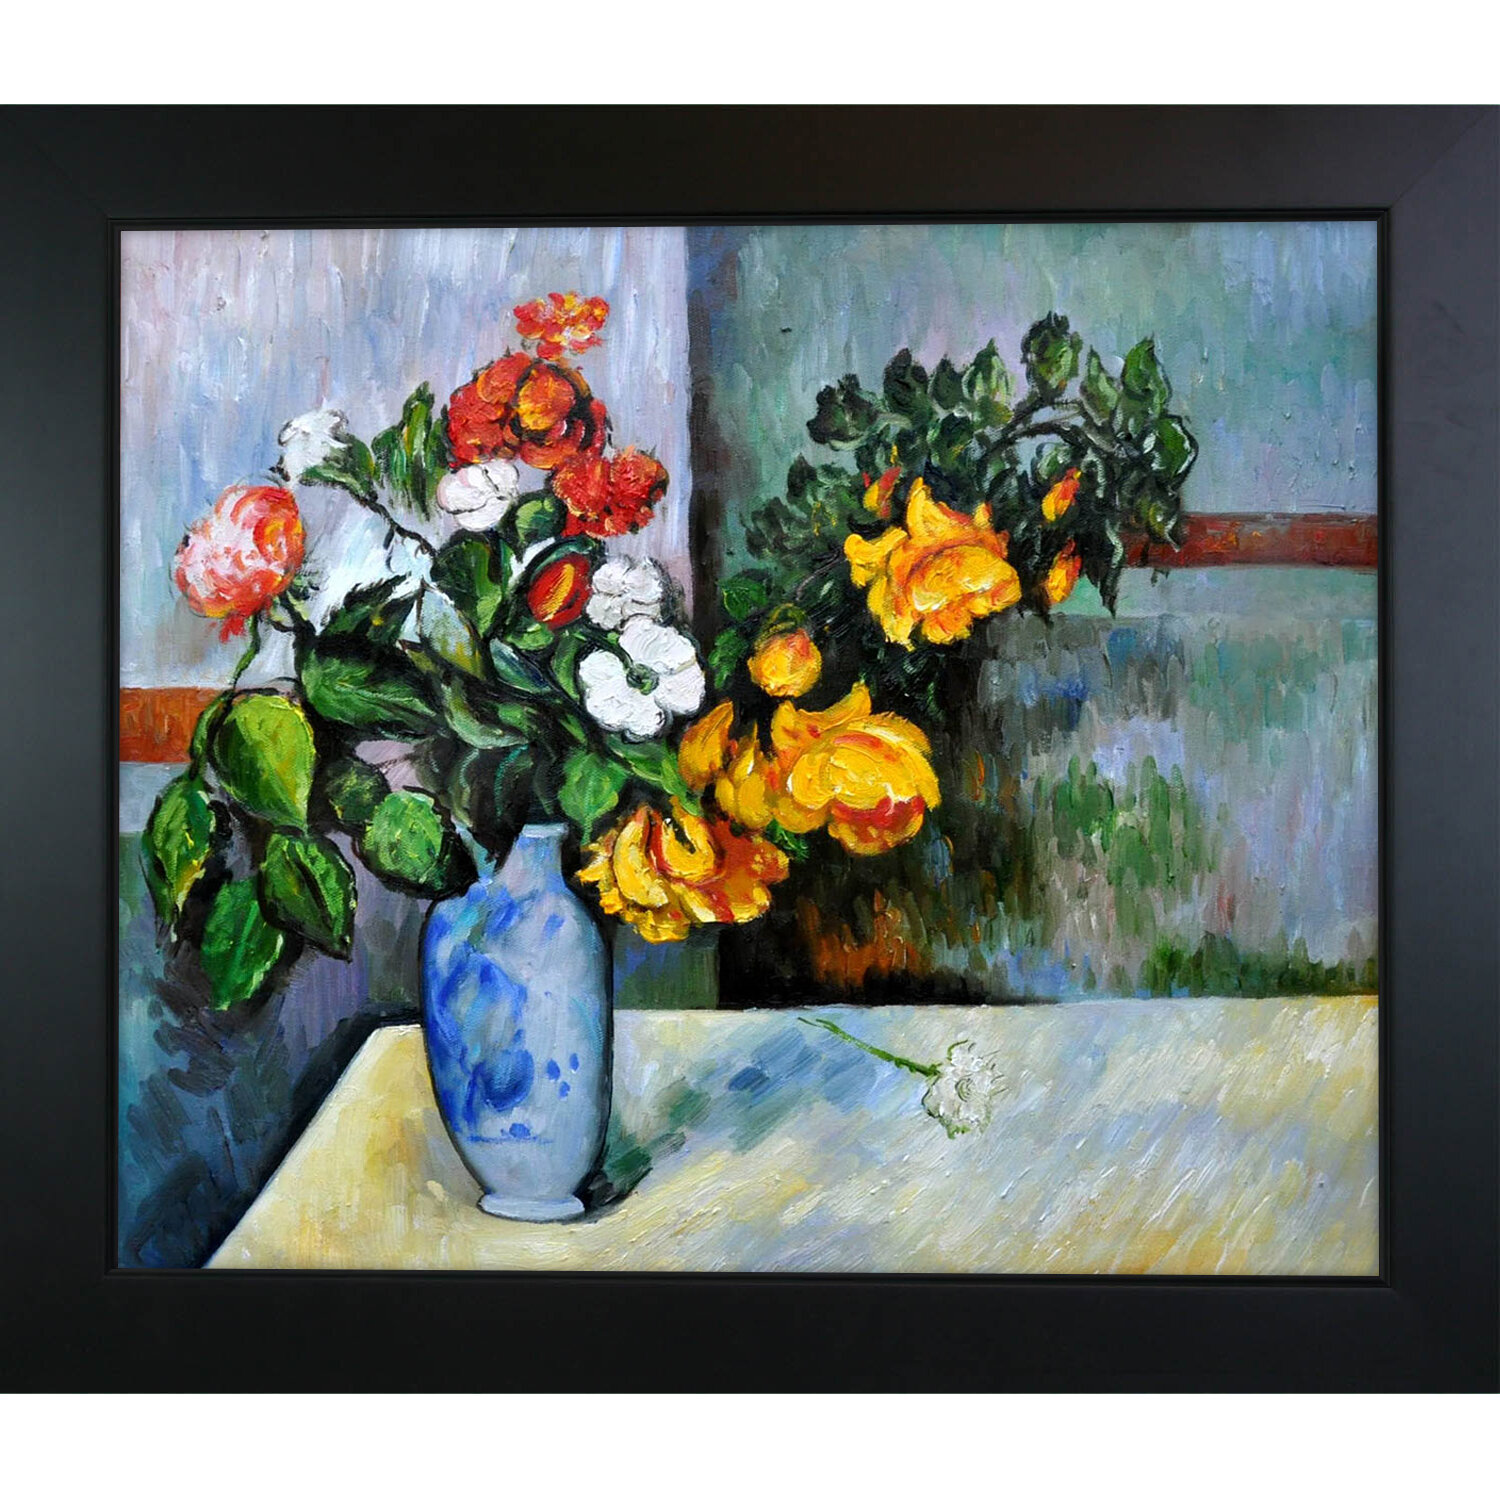 Tori home still life flowers in vase by paul cezanne framed tori home still life flowers in vase by paul cezanne framed painting reviews wayfair reviewsmspy